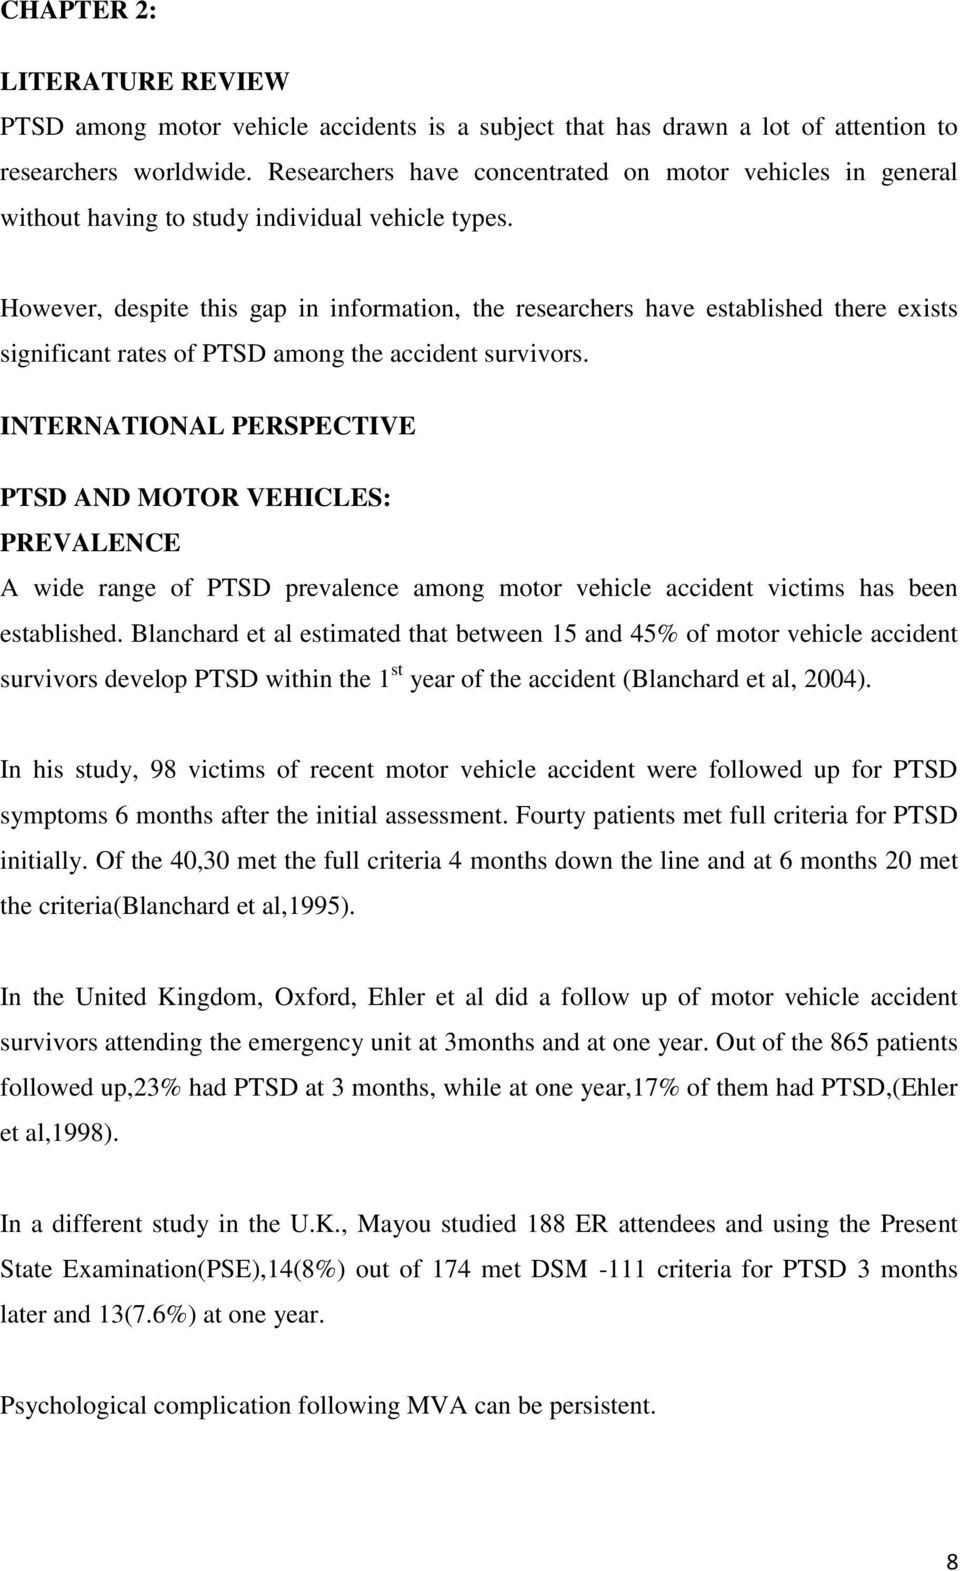 However, despite this gap in information, the researchers have established there exists significant rates of PTSD among the accident survivors.